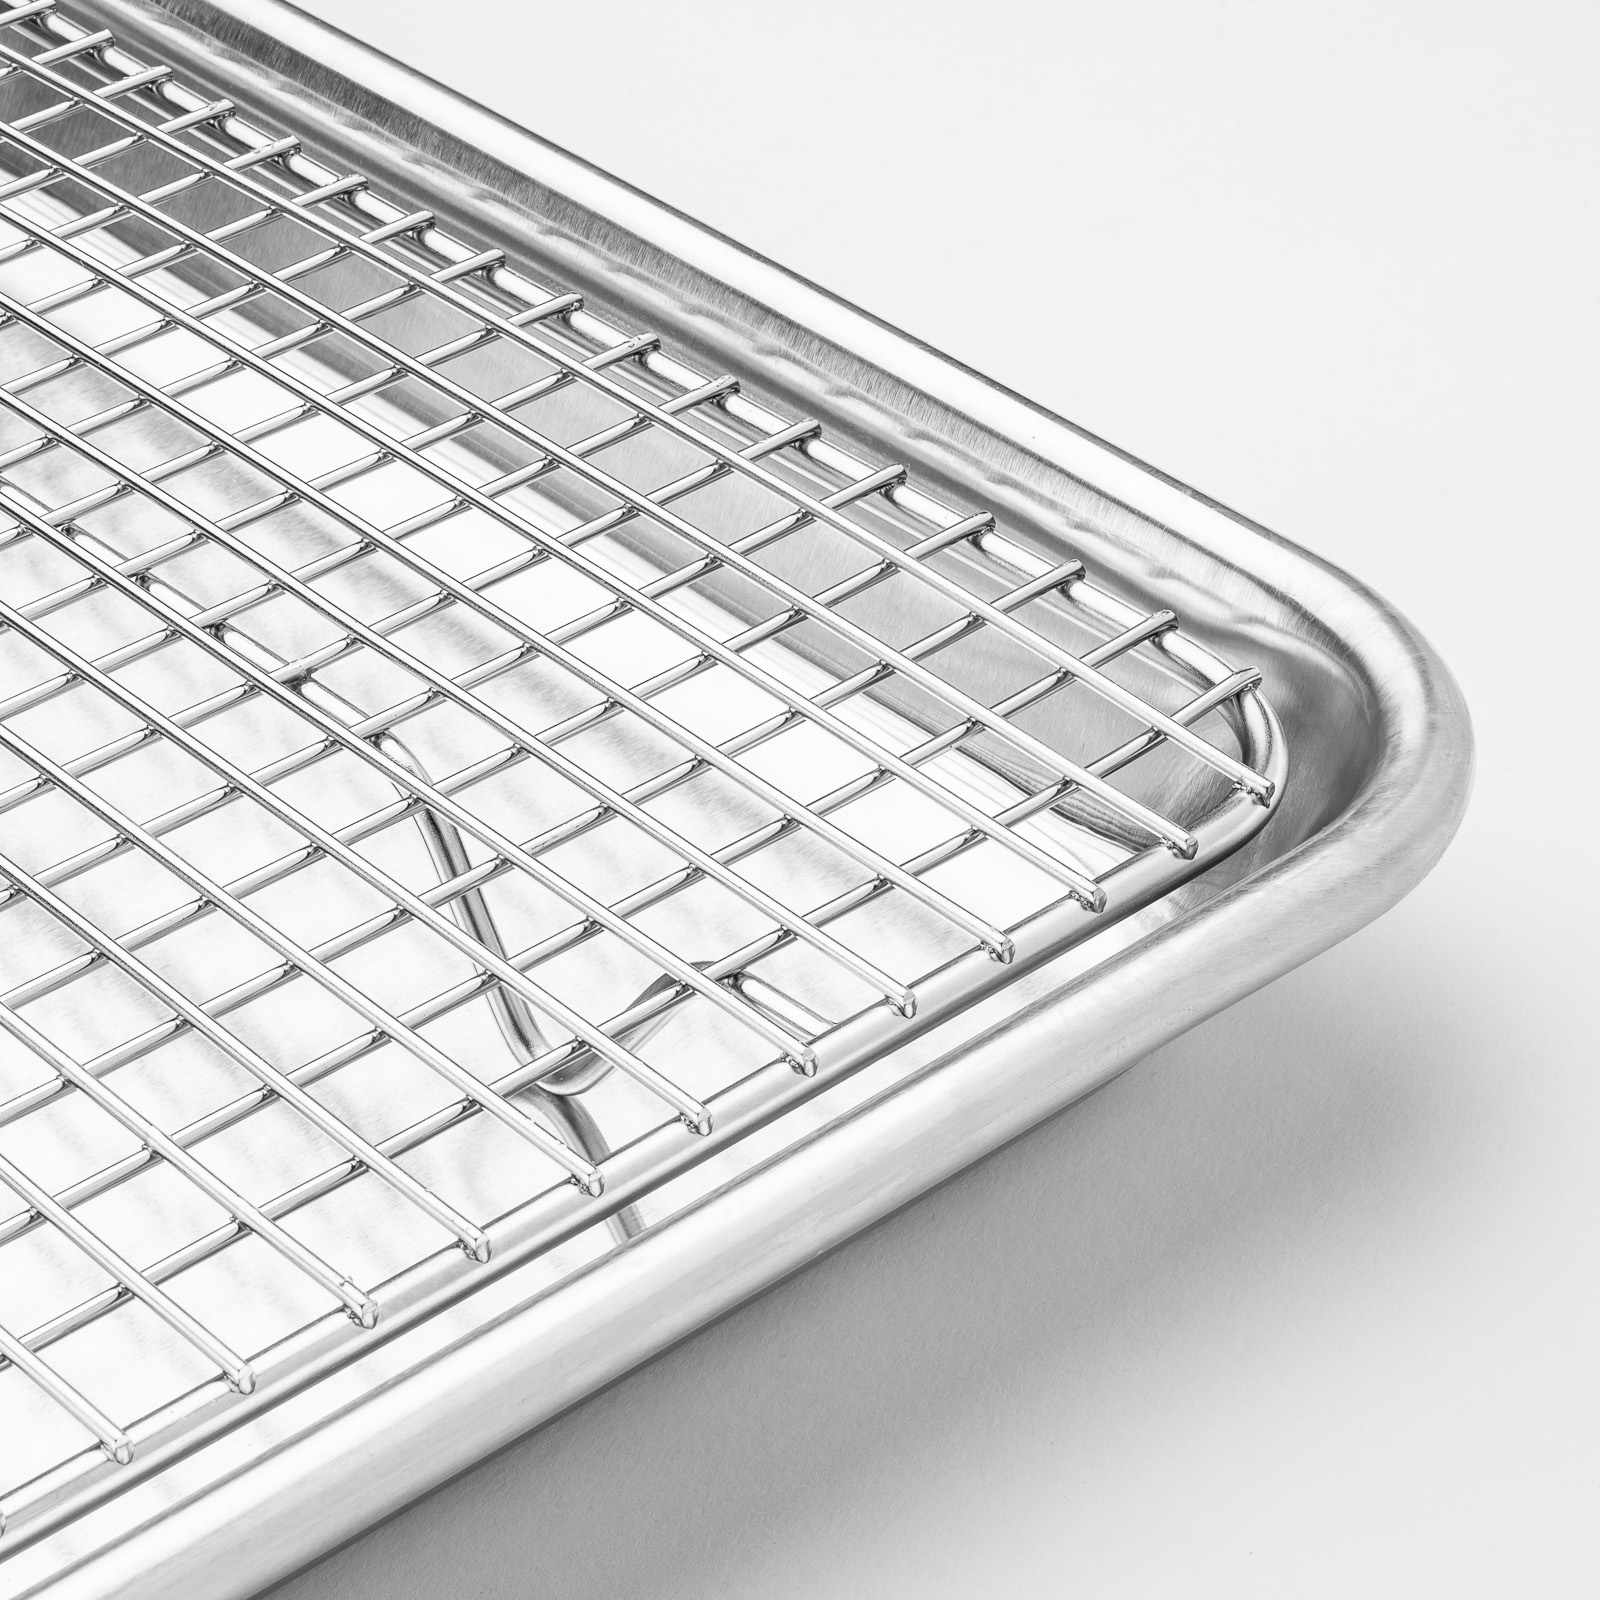 stainless steel baking cooling wire rack fits jelly roll cookie sheet oven pan ebay. Black Bedroom Furniture Sets. Home Design Ideas